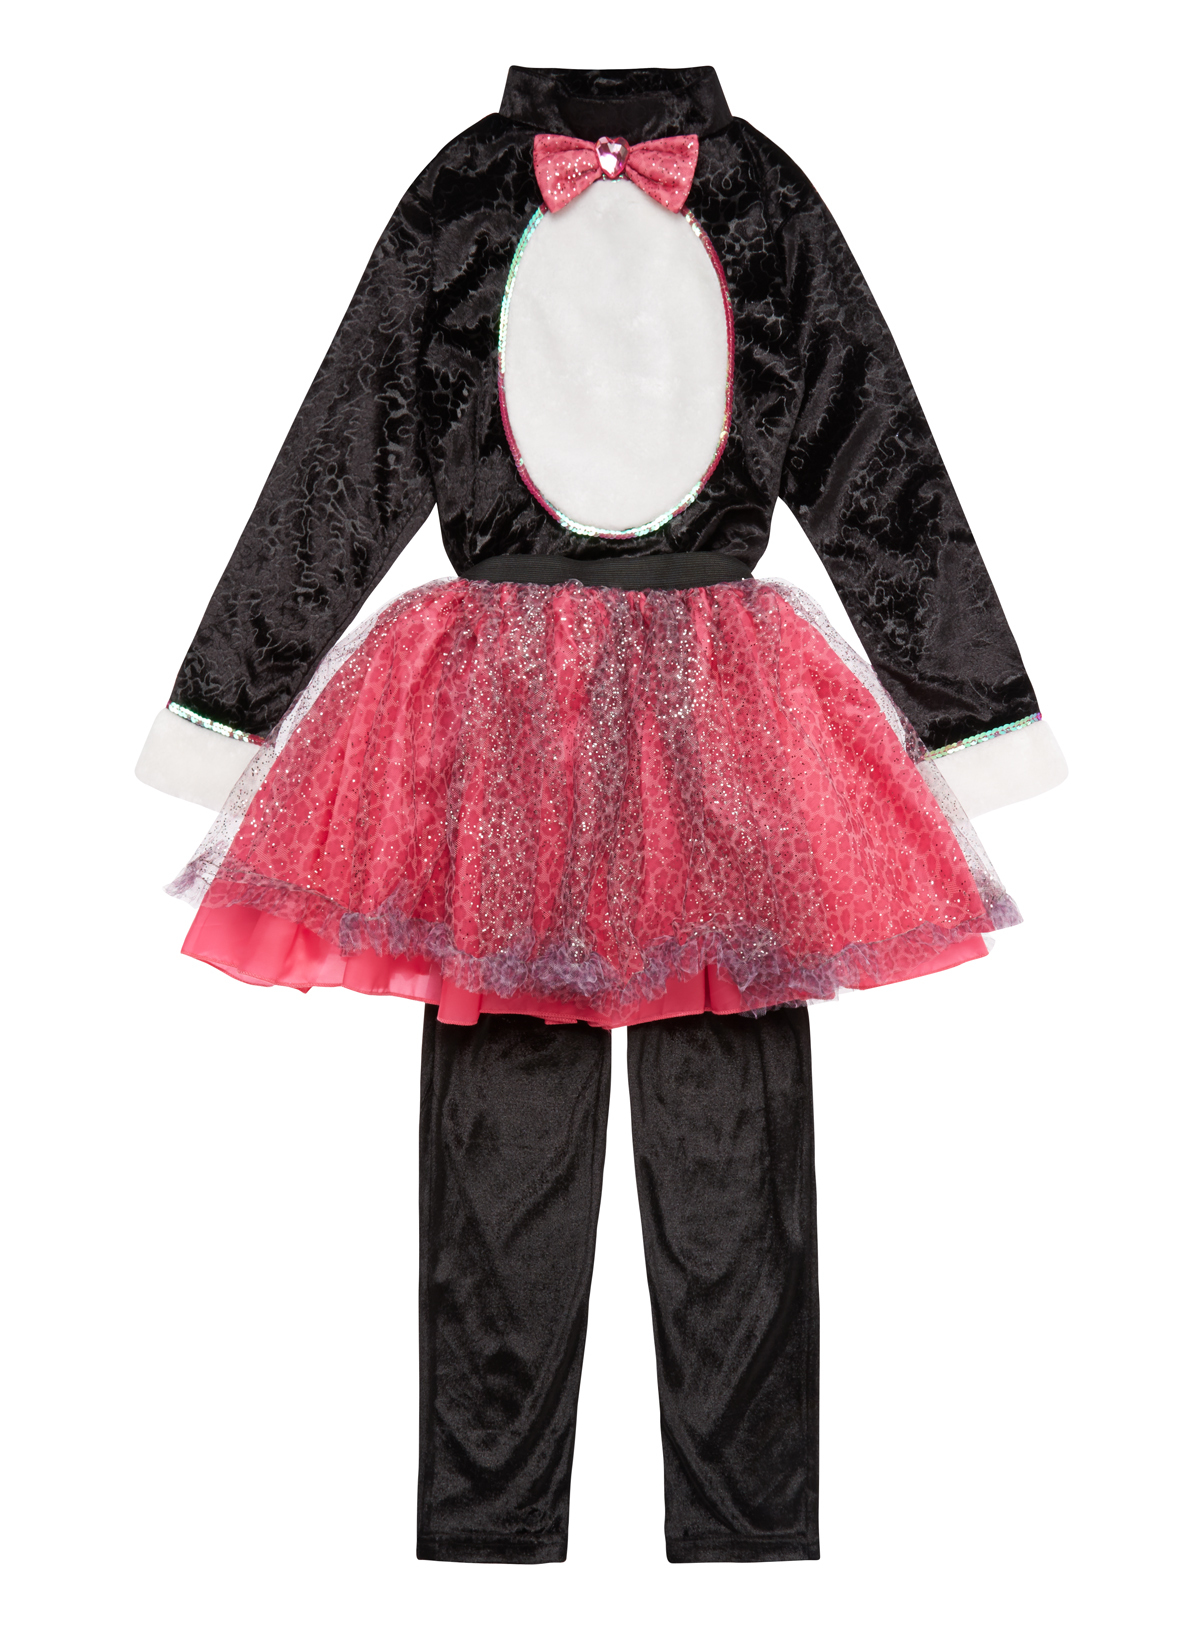 Halloween Kids Wicked Witches Cat Costume (3-12 years)   Tu clothing